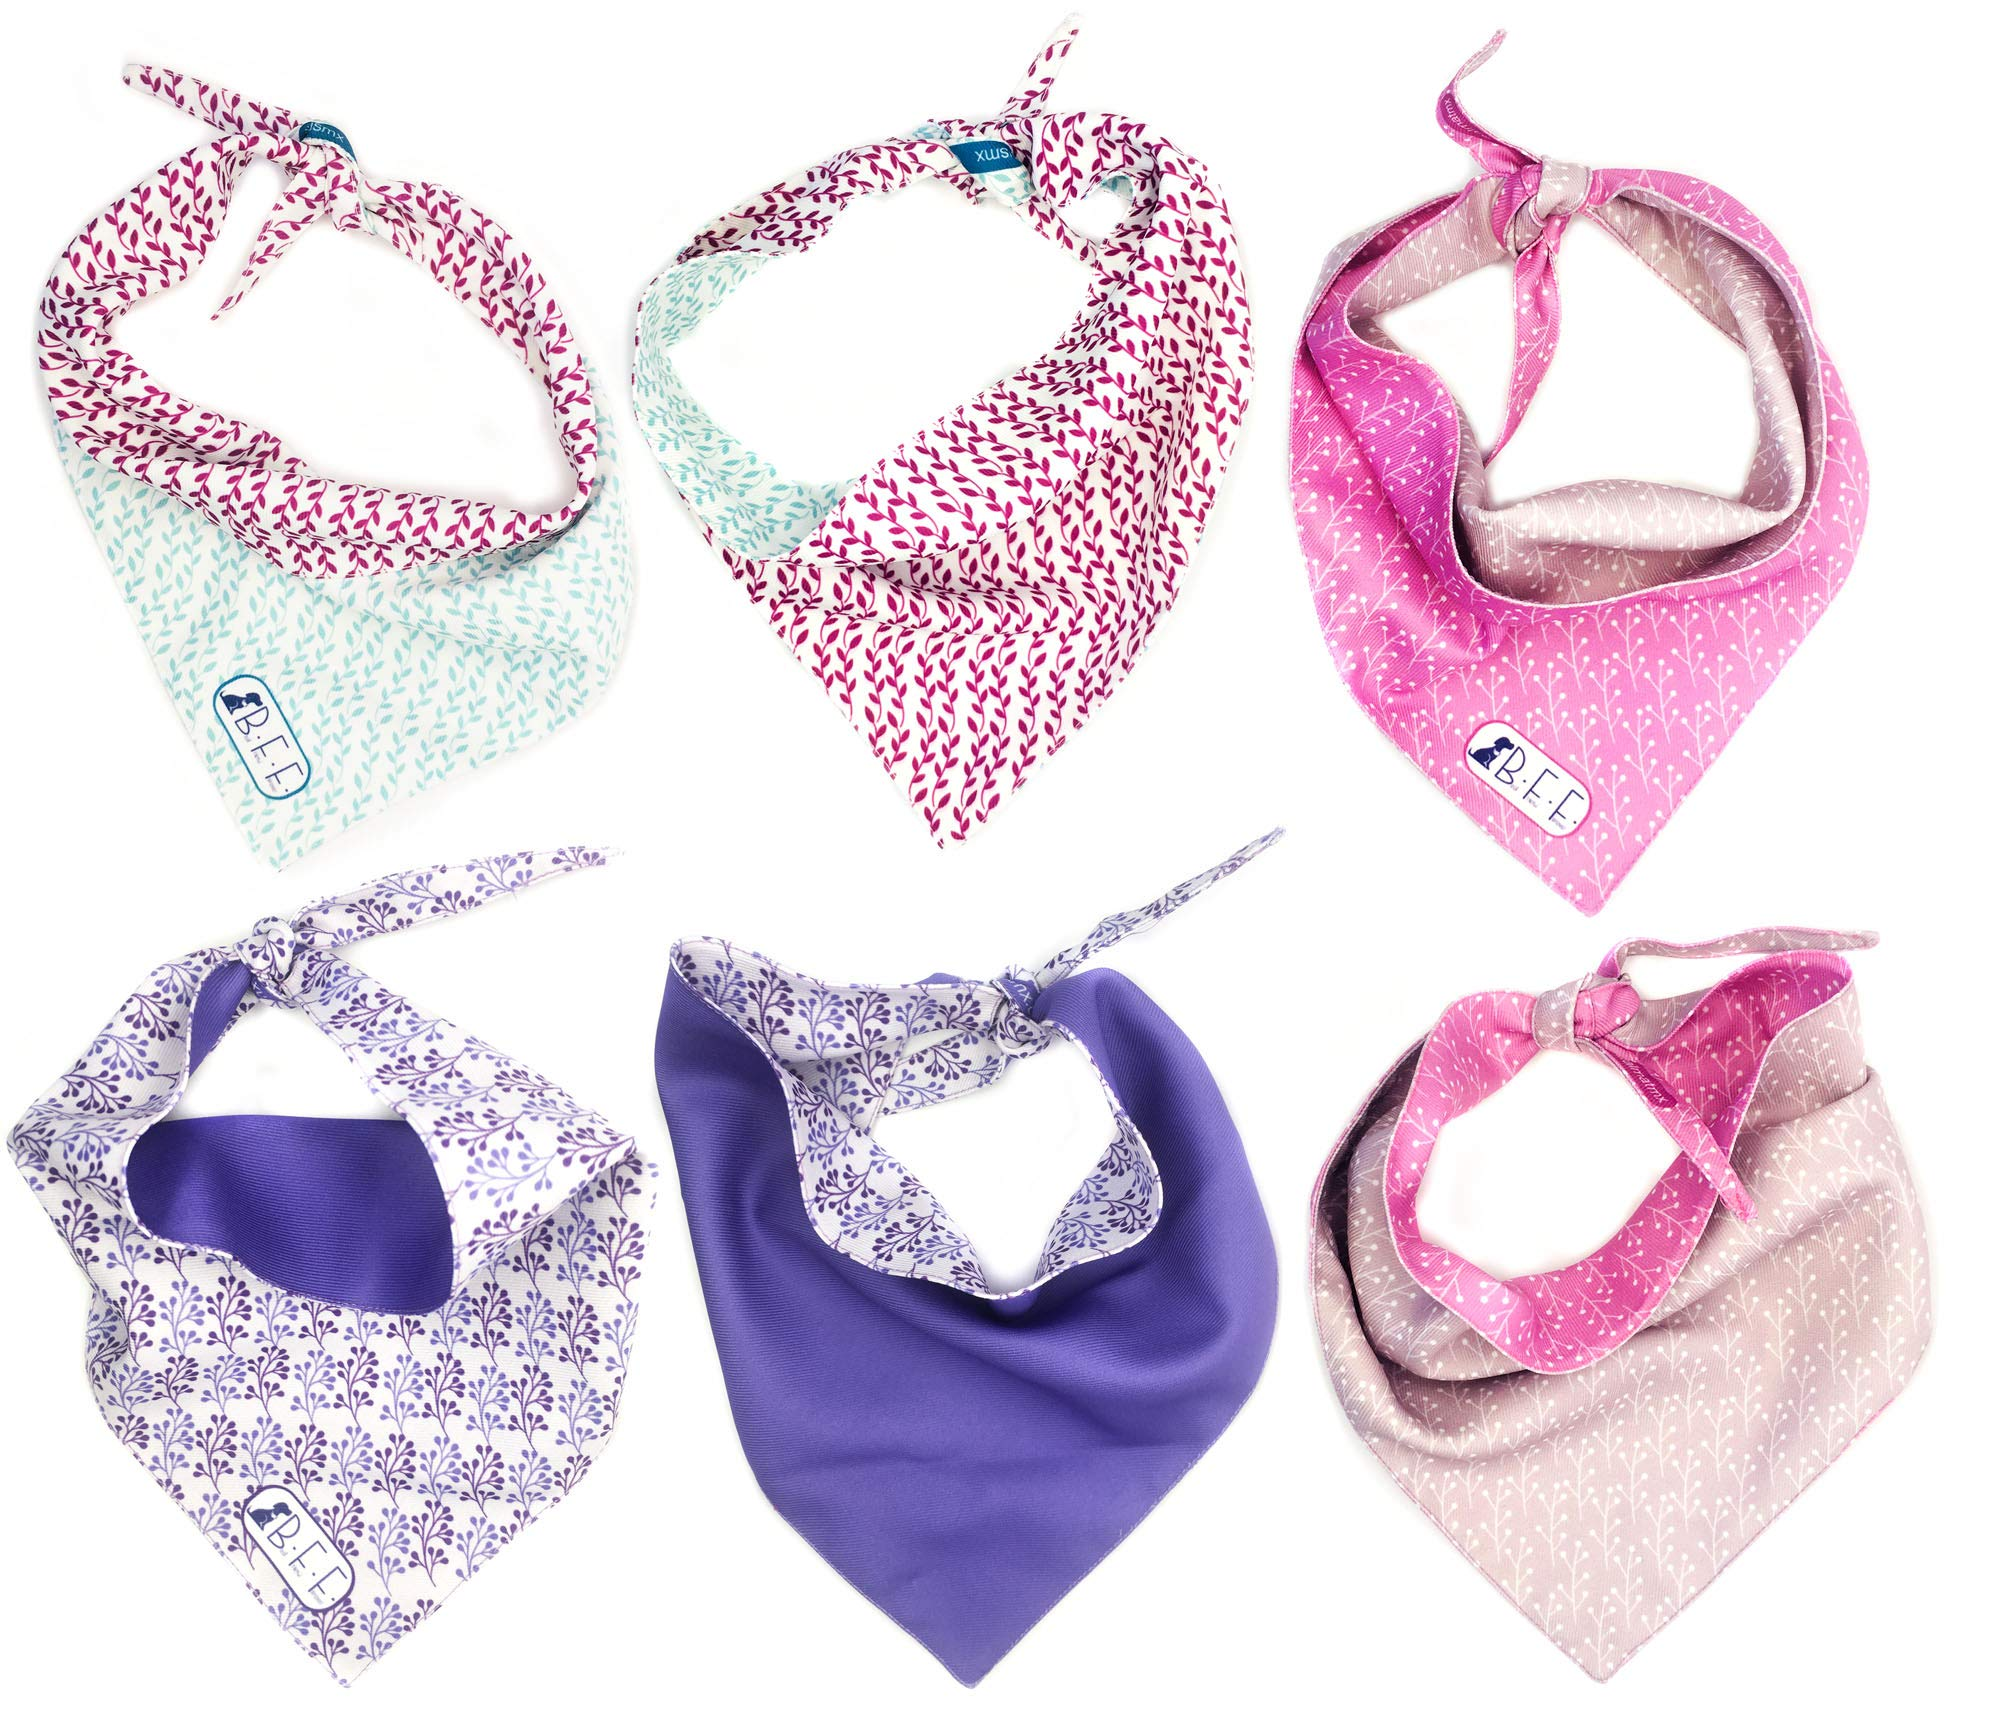 B&F 3 Pack Reversible Dog Bandana 3 Pieces - 6 Looks, Machine Washable Handmade pet Accessories. Scarves for Small, Medium,and Large Dogs. Mod. River